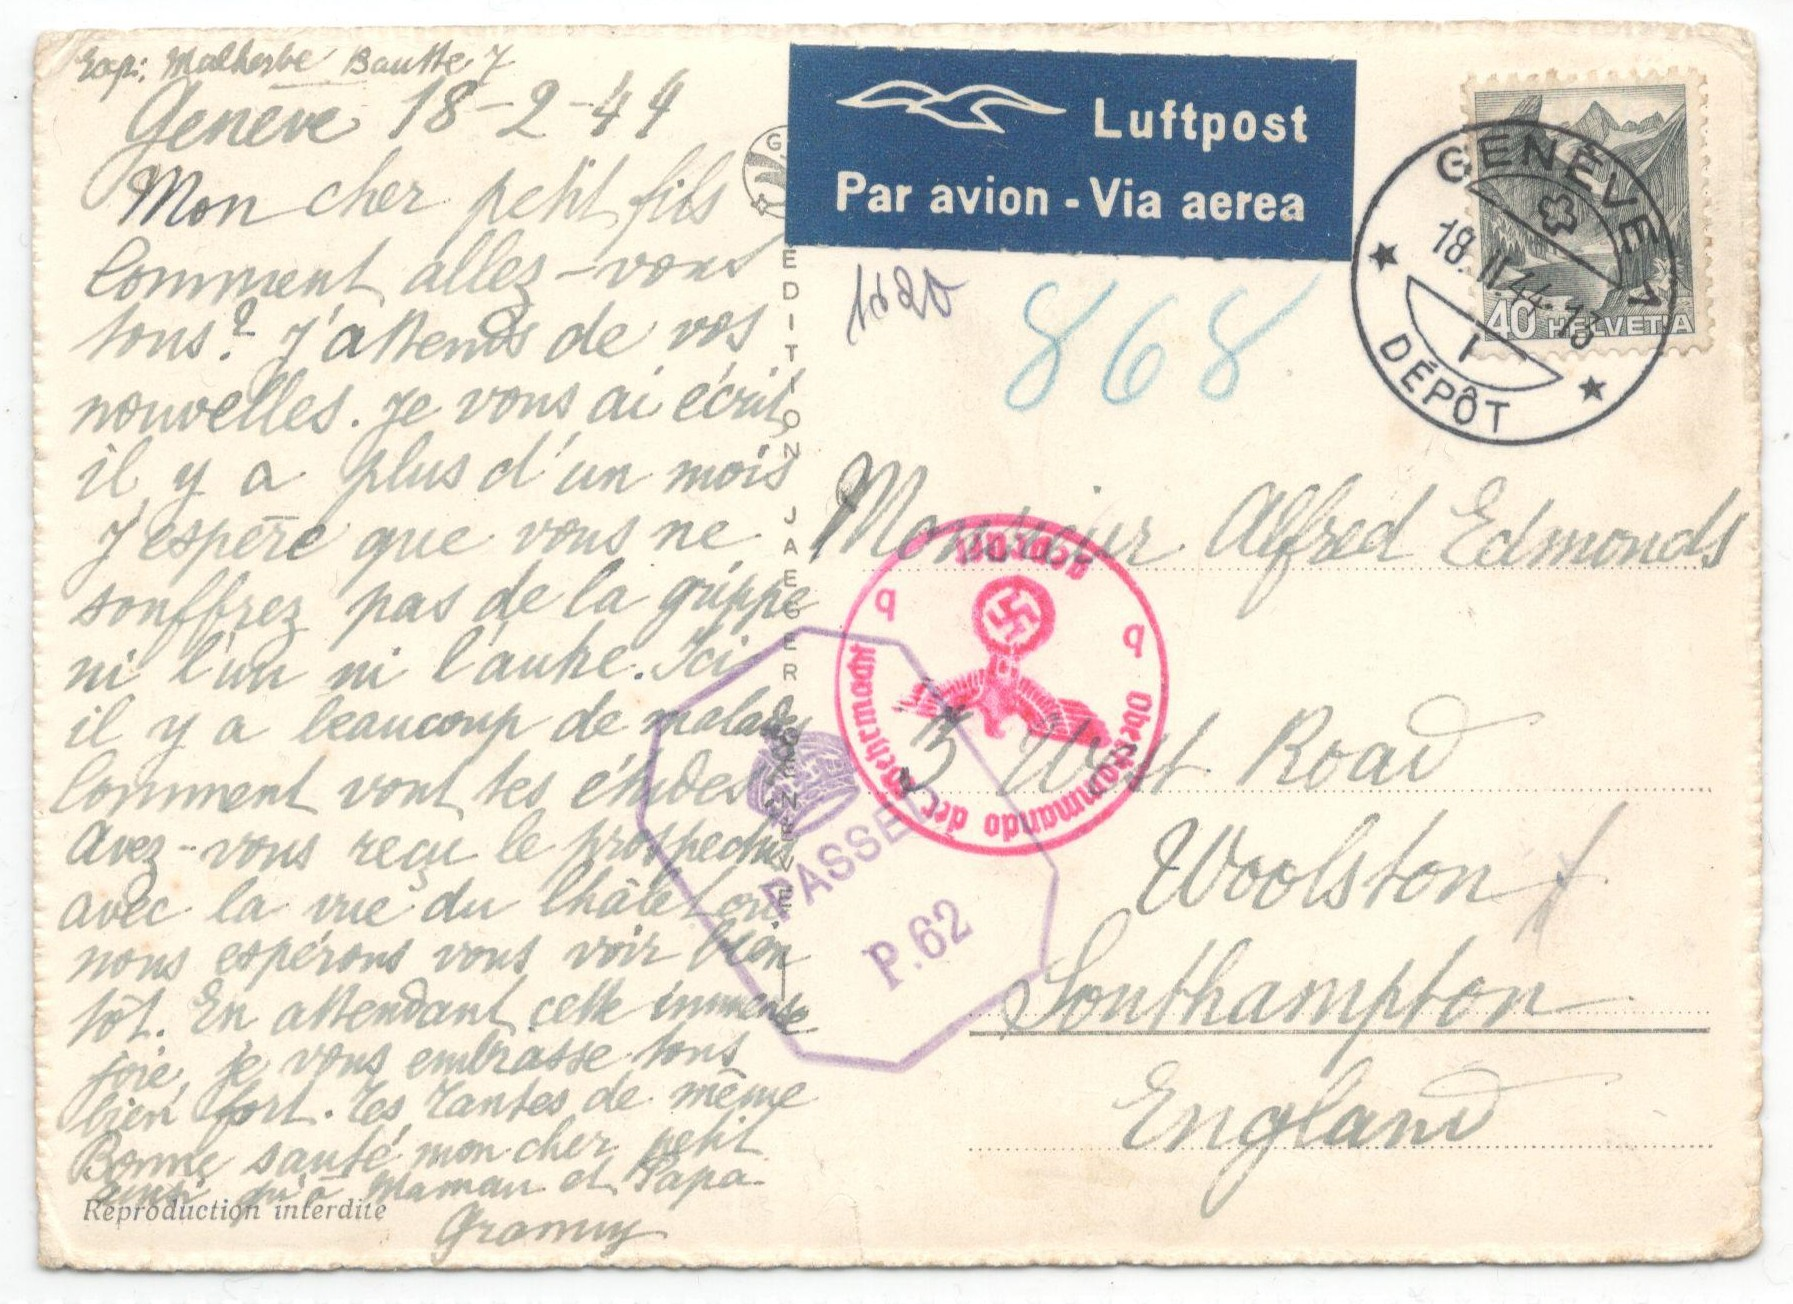 Lot 17 - 1944 COMITE INTERNATIONAL DE LA CROIX ROUGE GENEVE - POSTED 1944 PASSED BY CENSOR